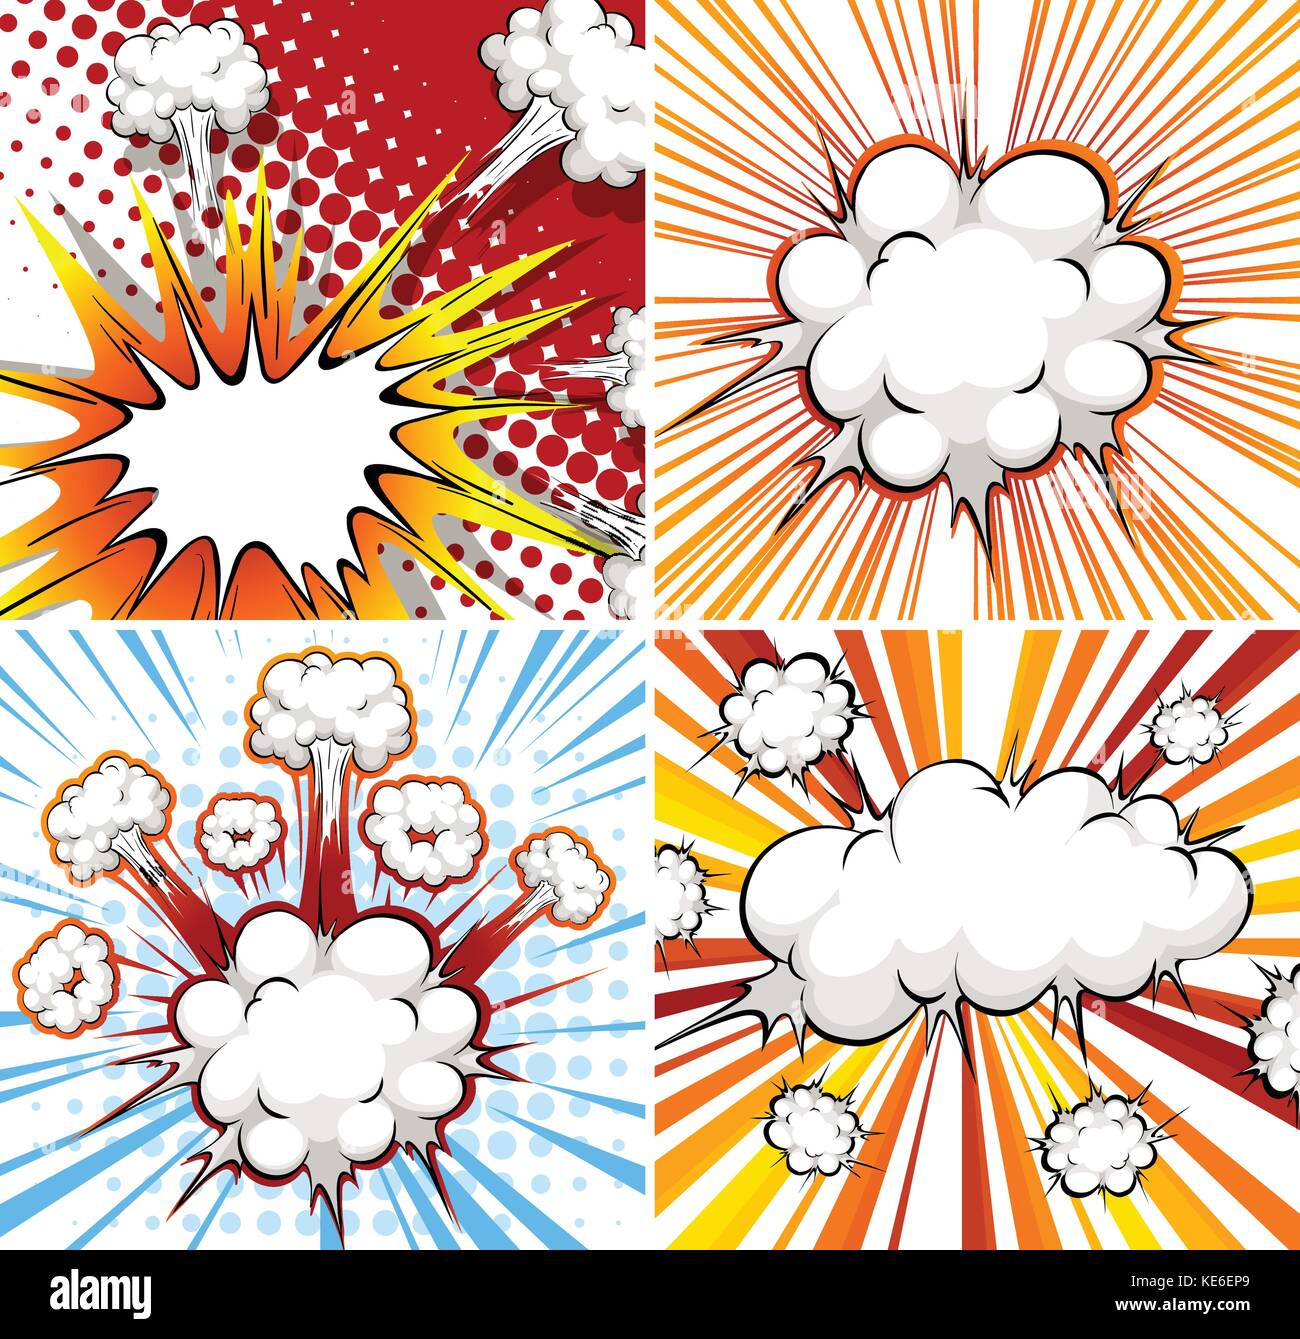 Explosion template in four different designs Stock Vector Art ...